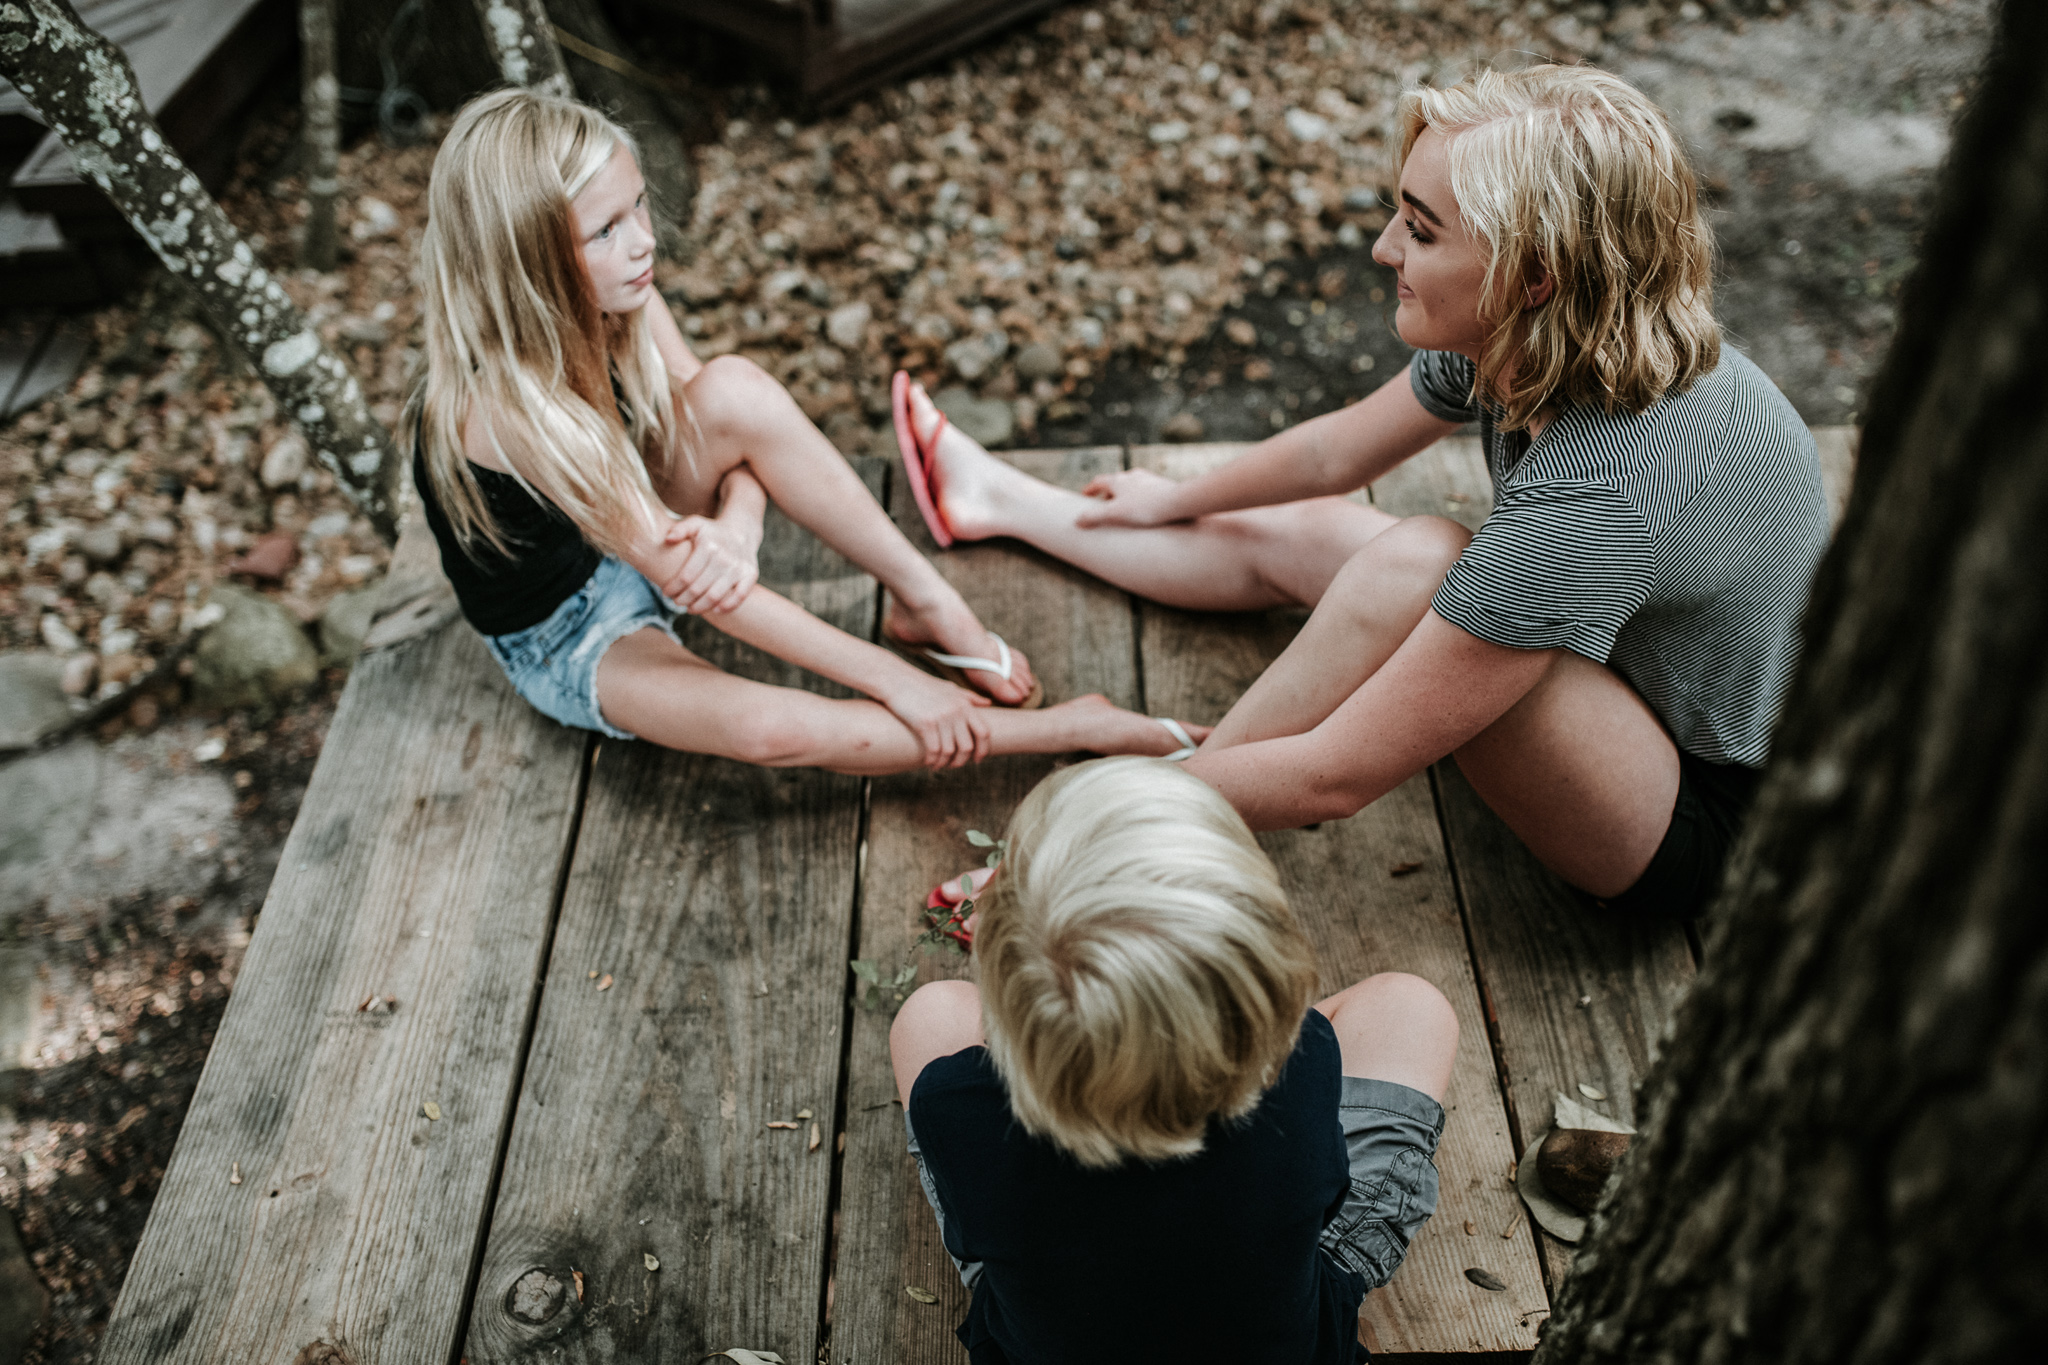 The way Makenzie connected with her younger siblings…It was something truly special.